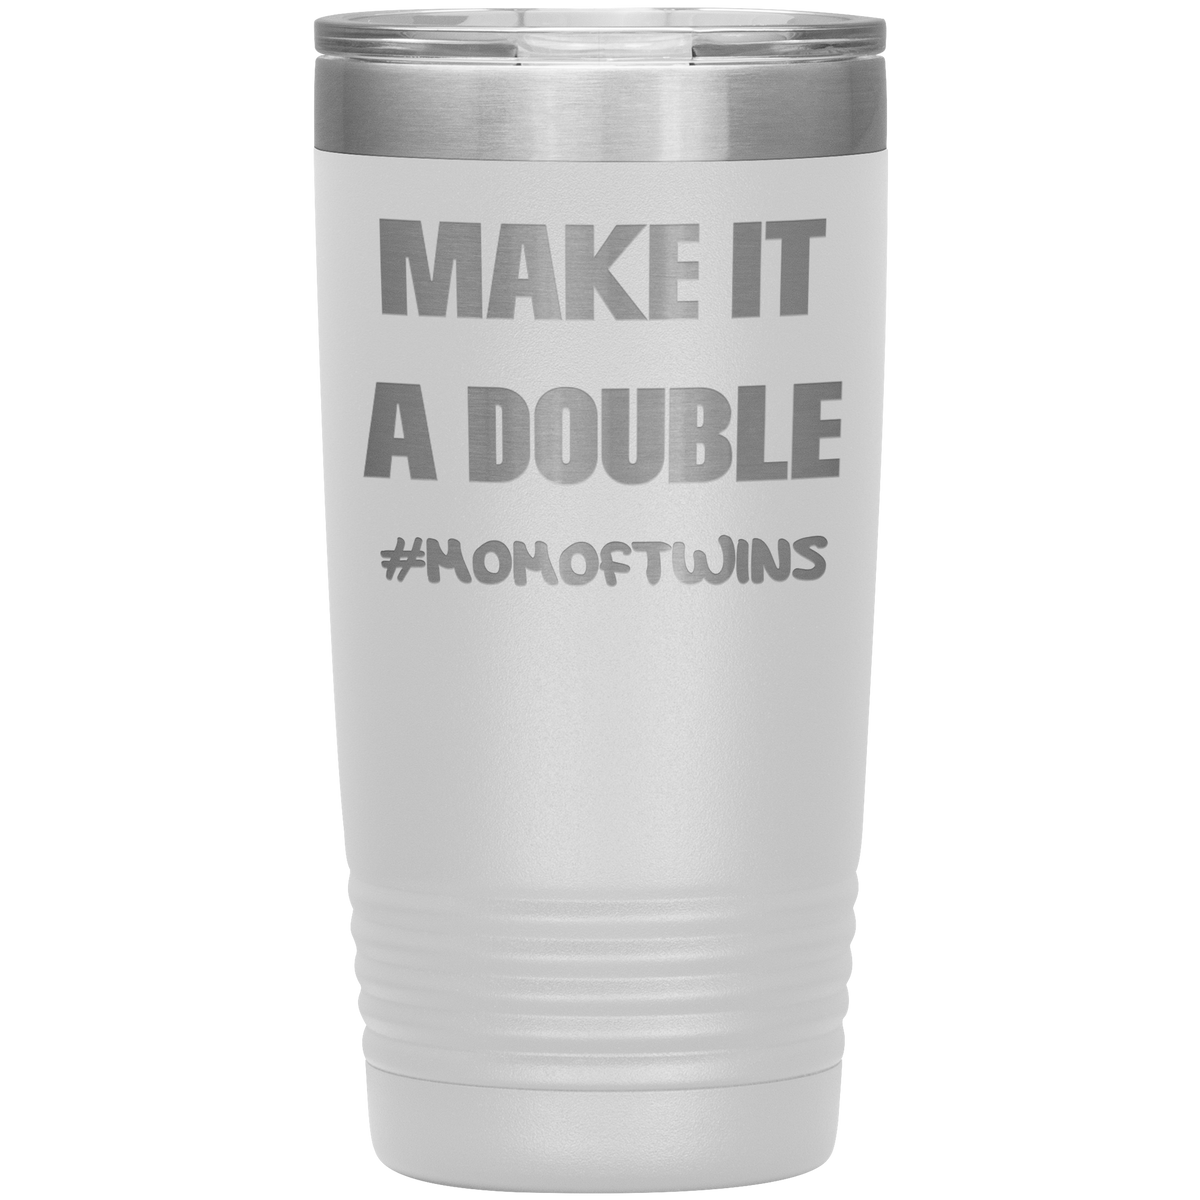 Make It A Double #momoftwins Engraved Tumbler